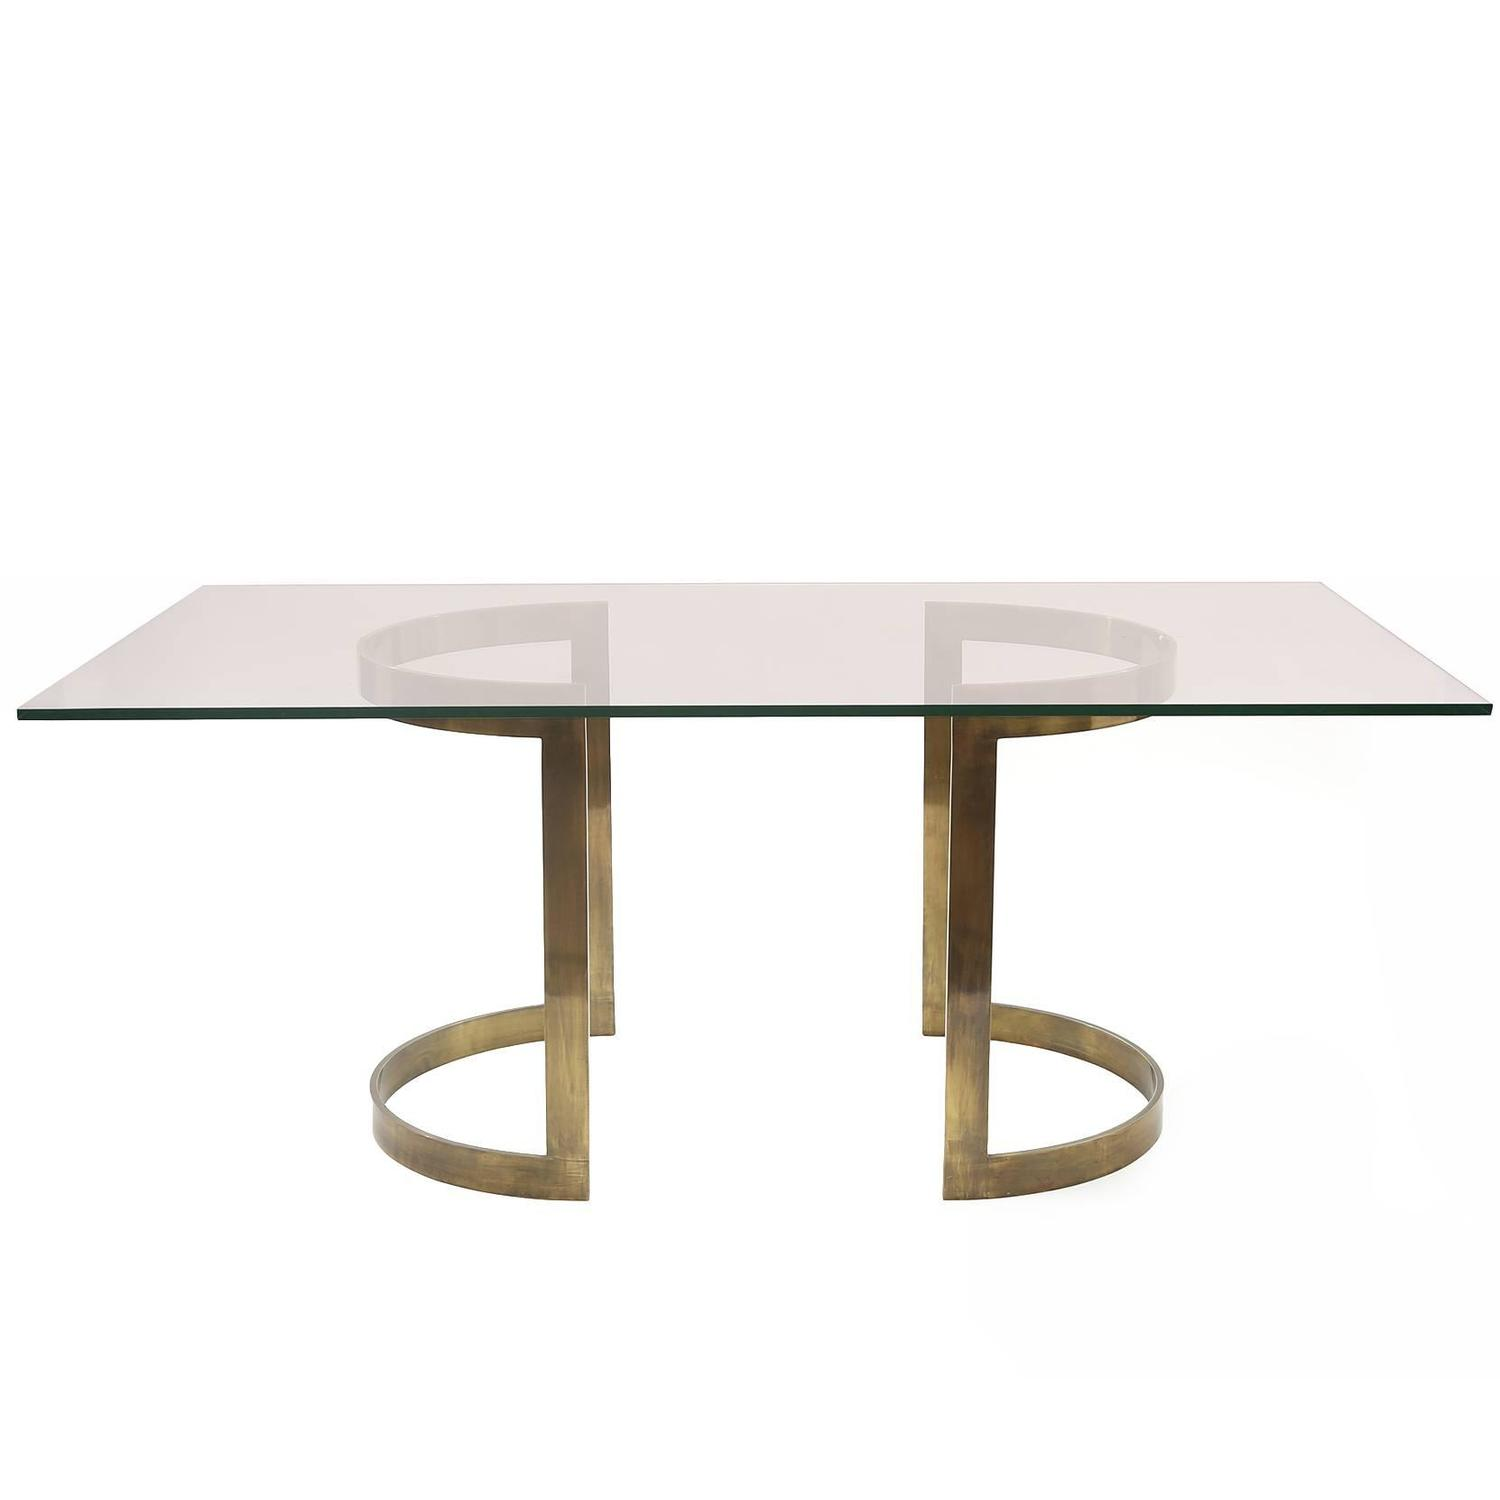 Milo baughman bronze and glass dining table at stdibs